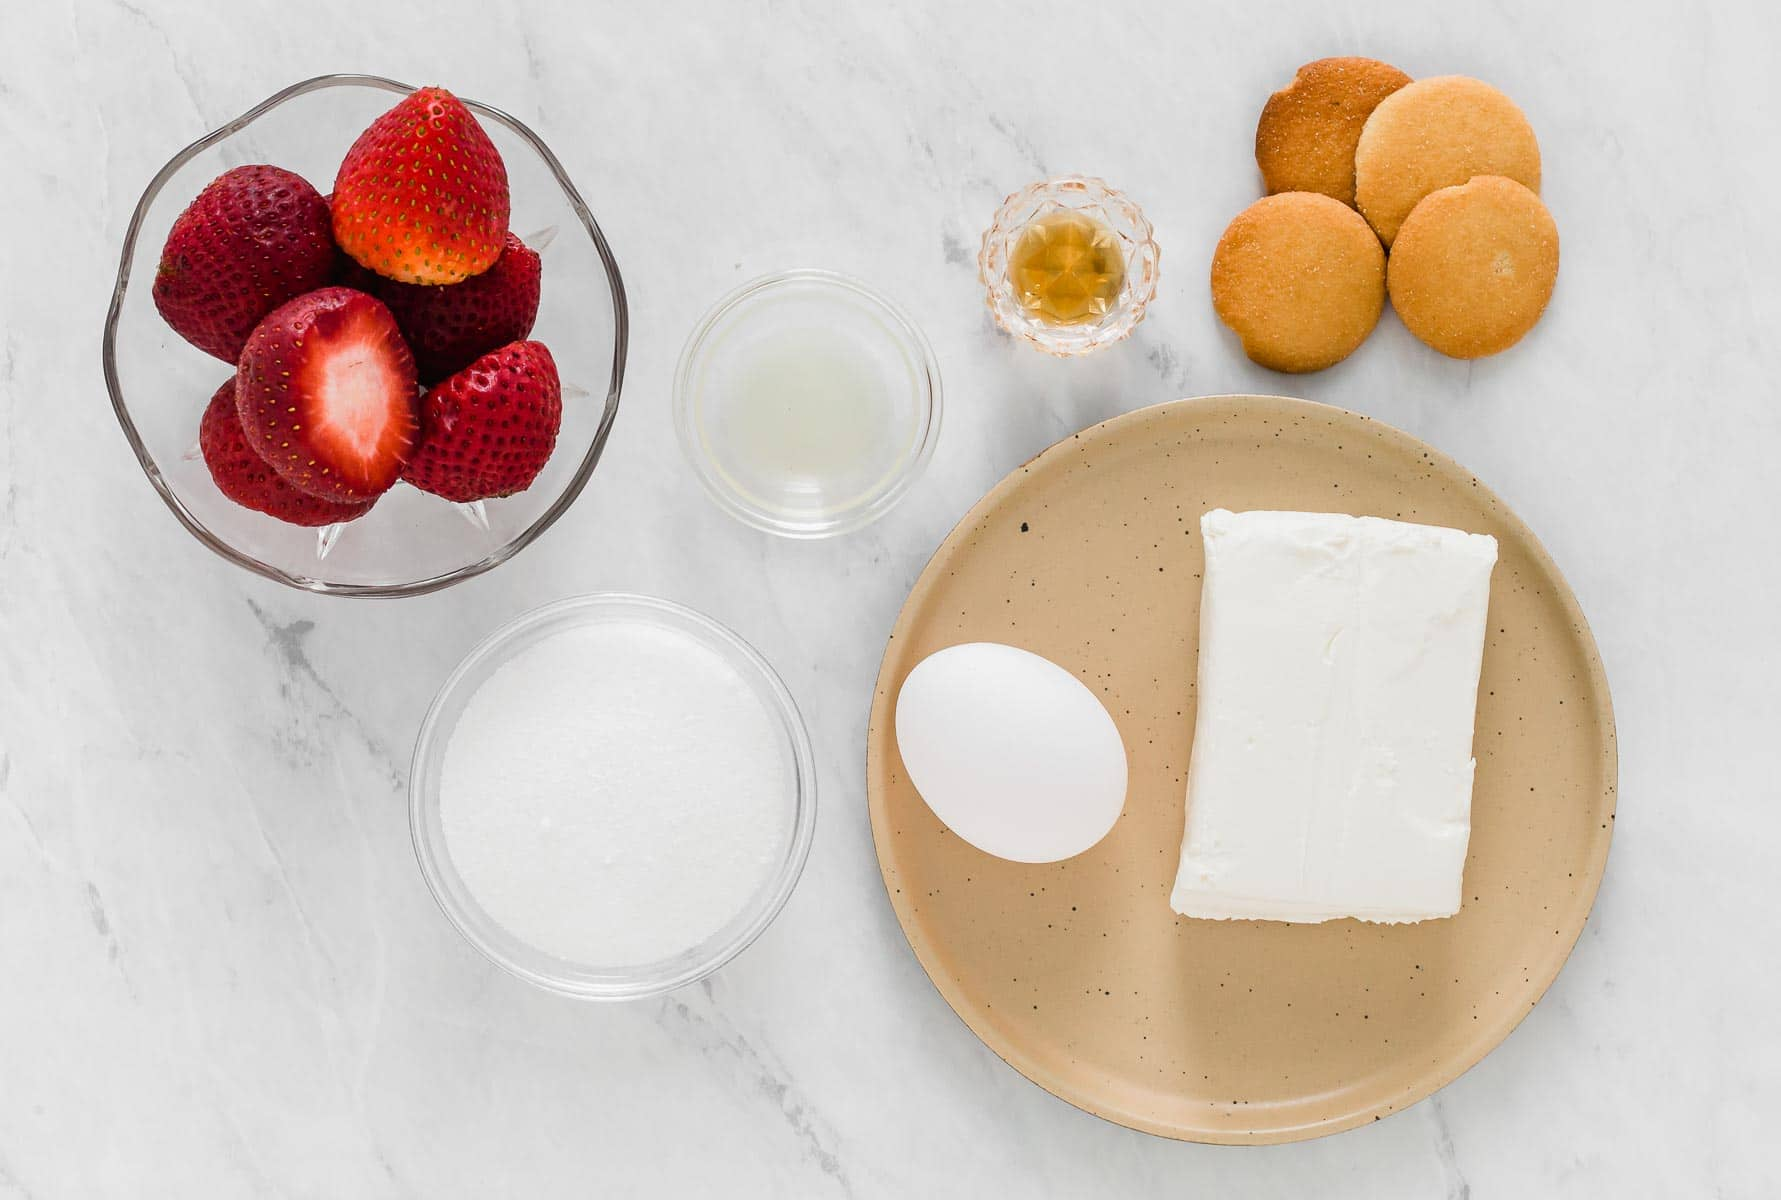 Ingredients for mini cheesecakes on a white table.